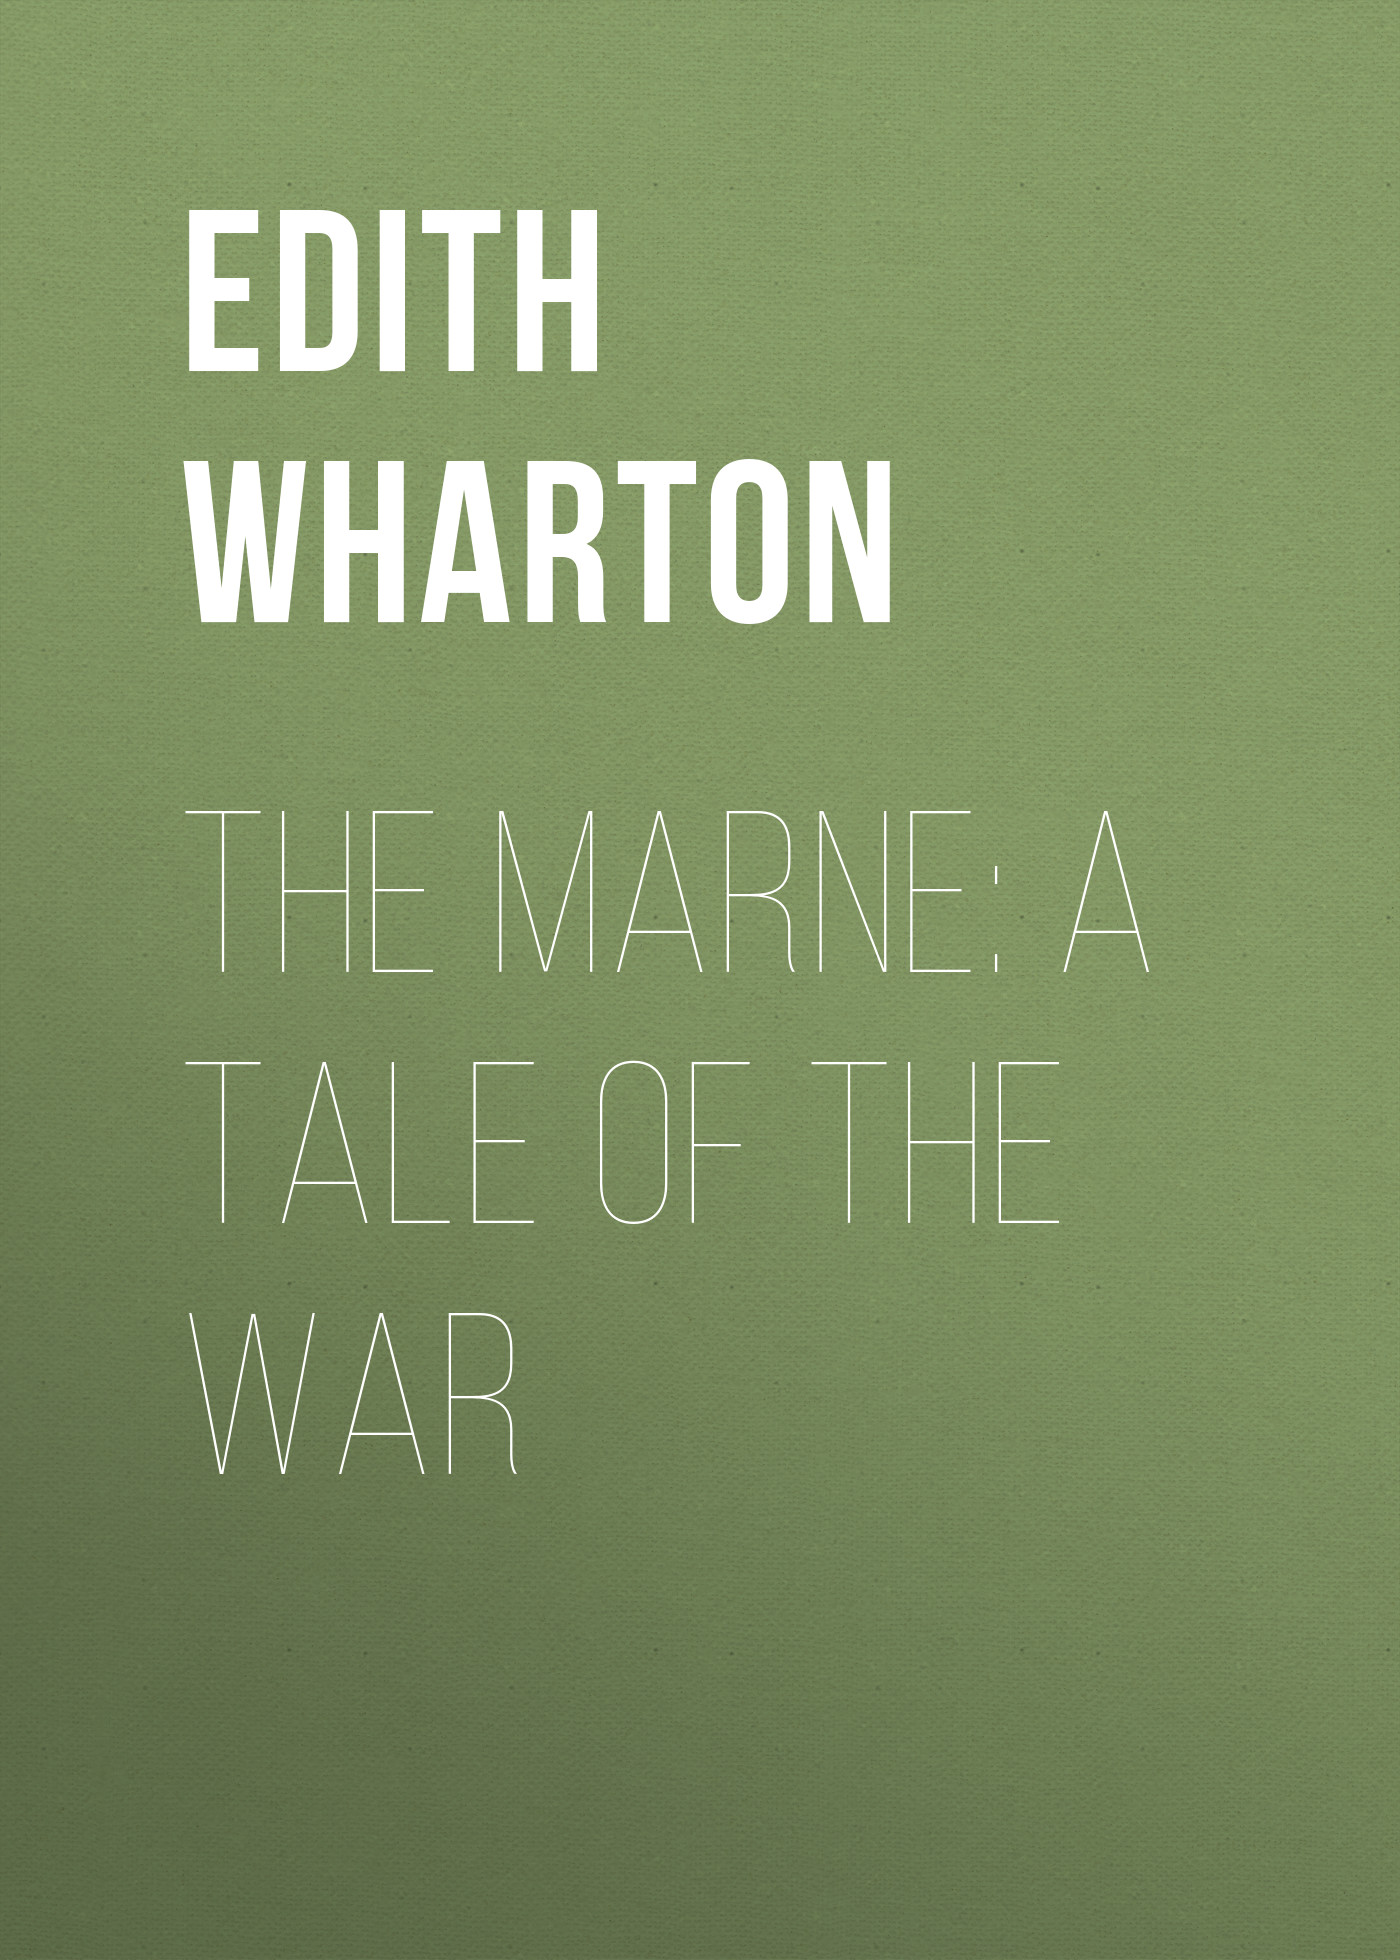 Edith Wharton The Marne: A Tale of the War edith wharton kuupaiste heiastused